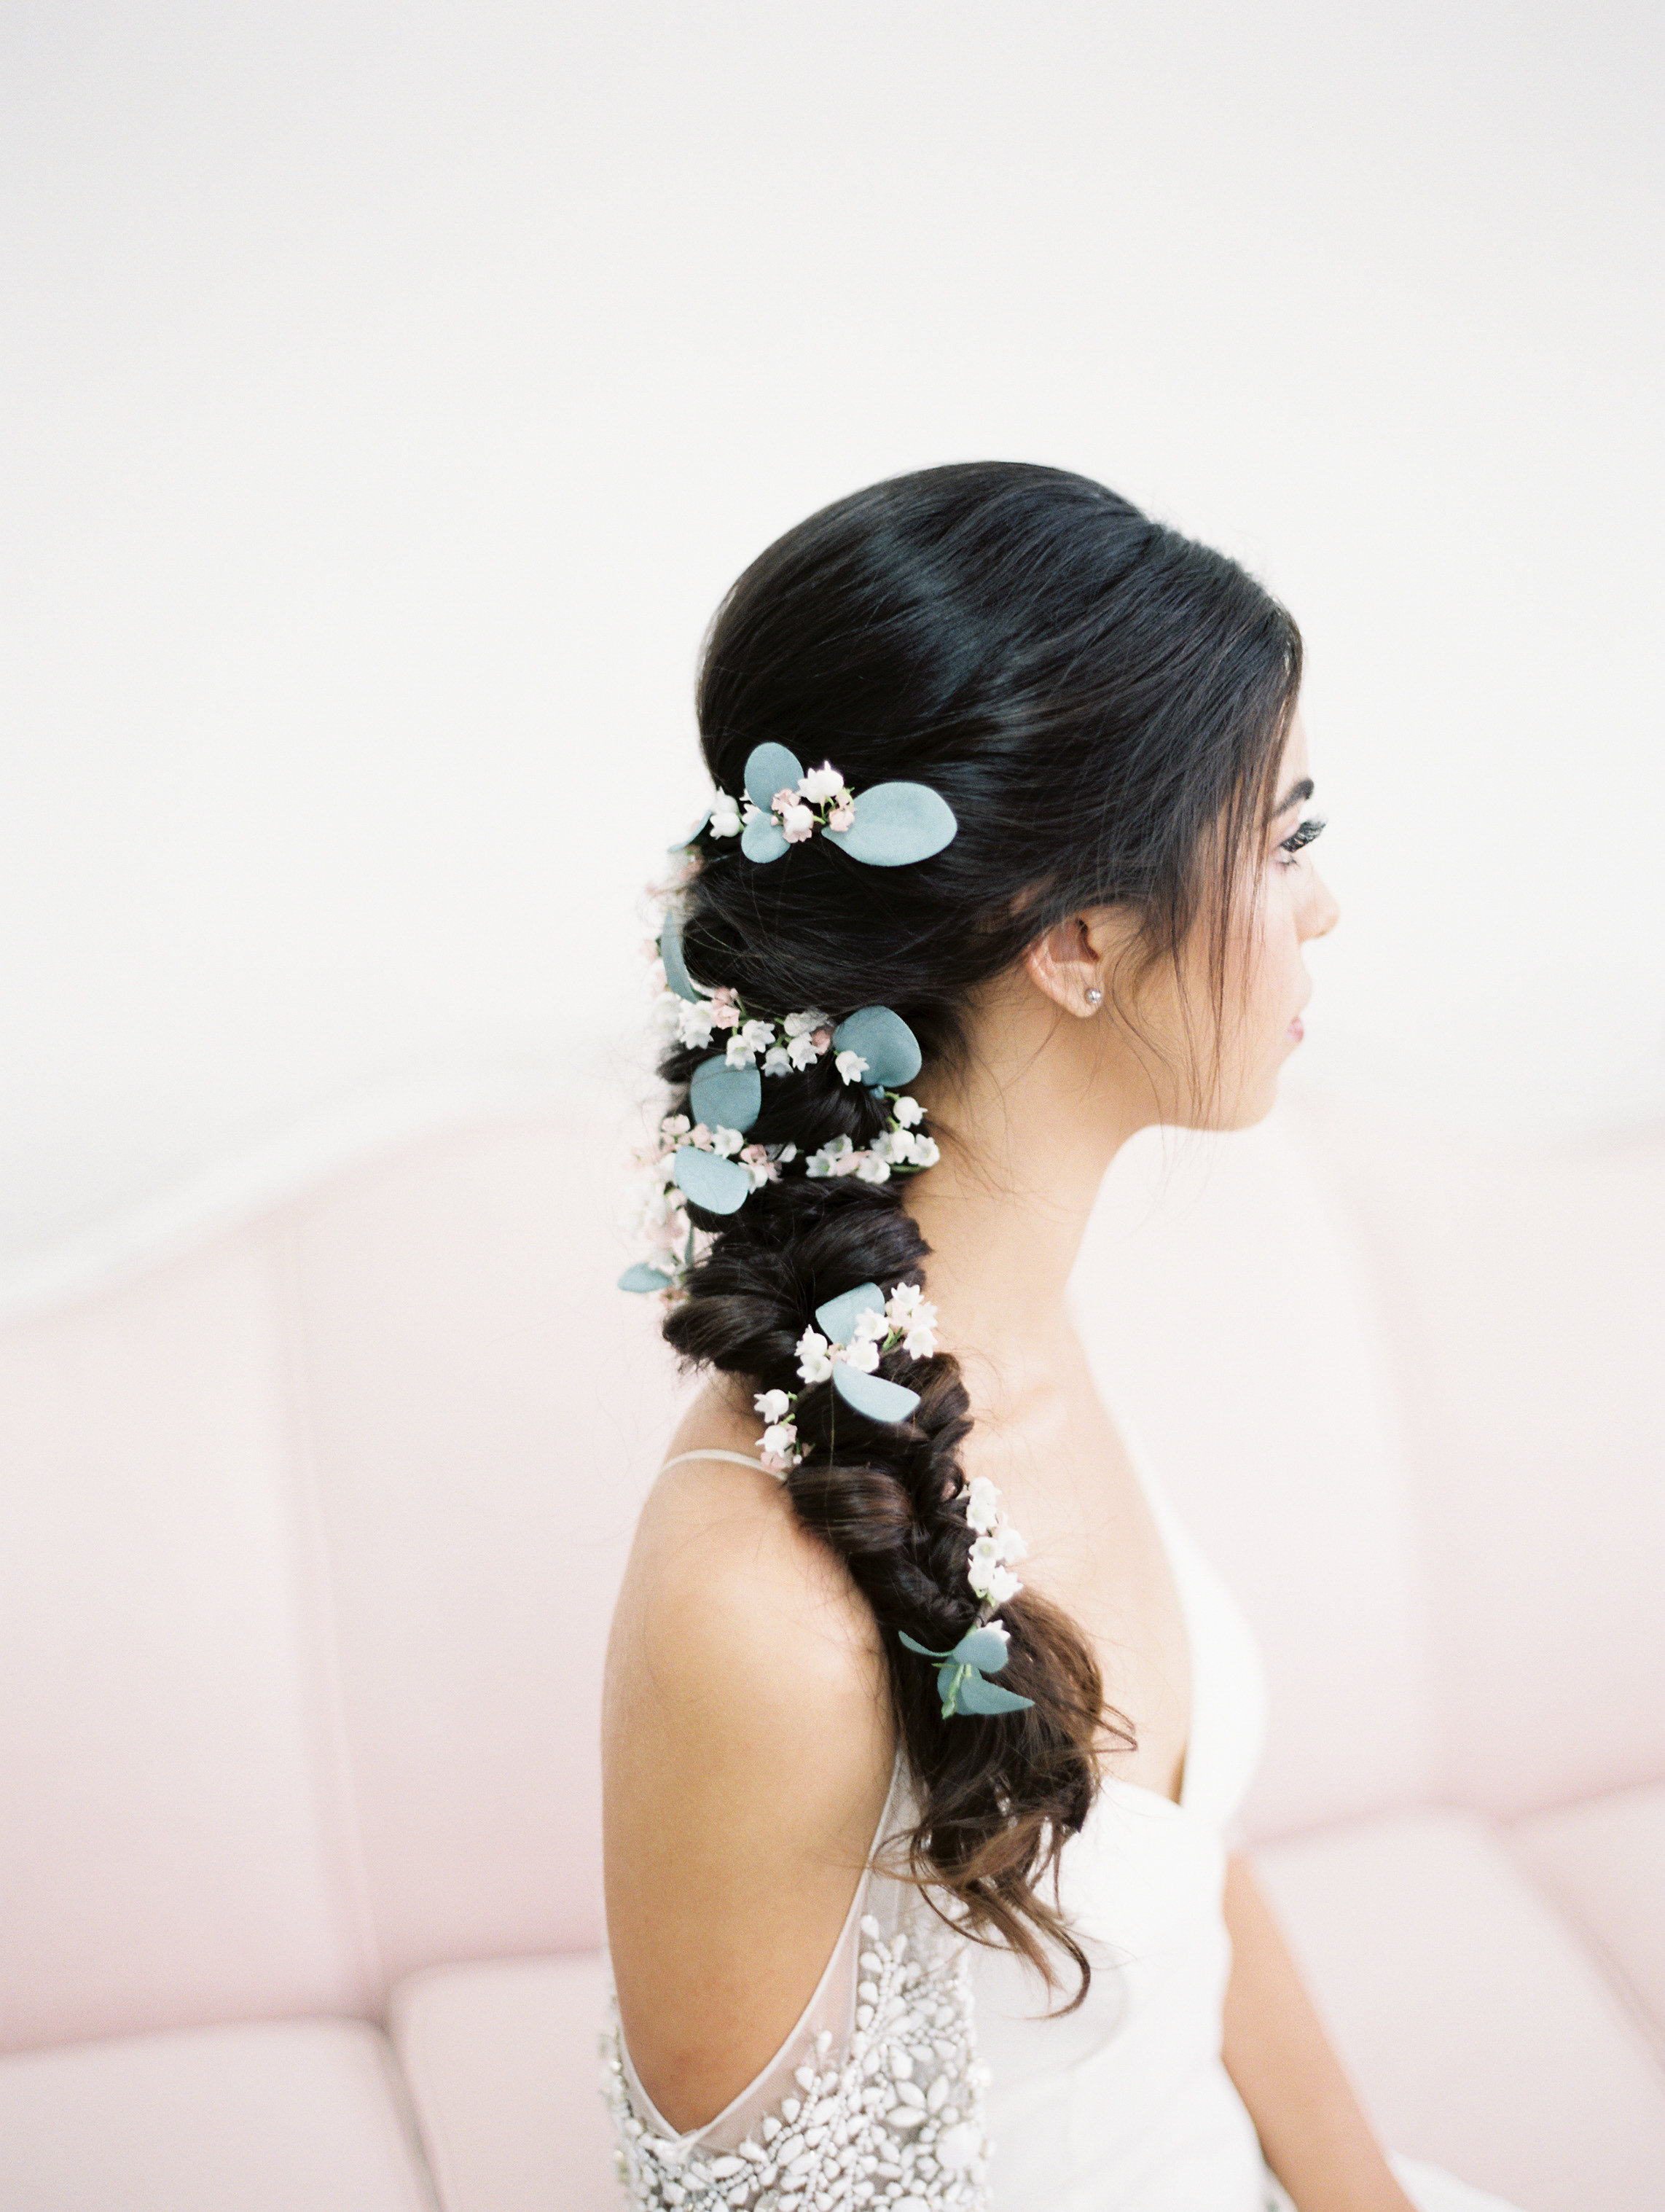 flower-garland-braided-bridal-hairstyle-boho-bride